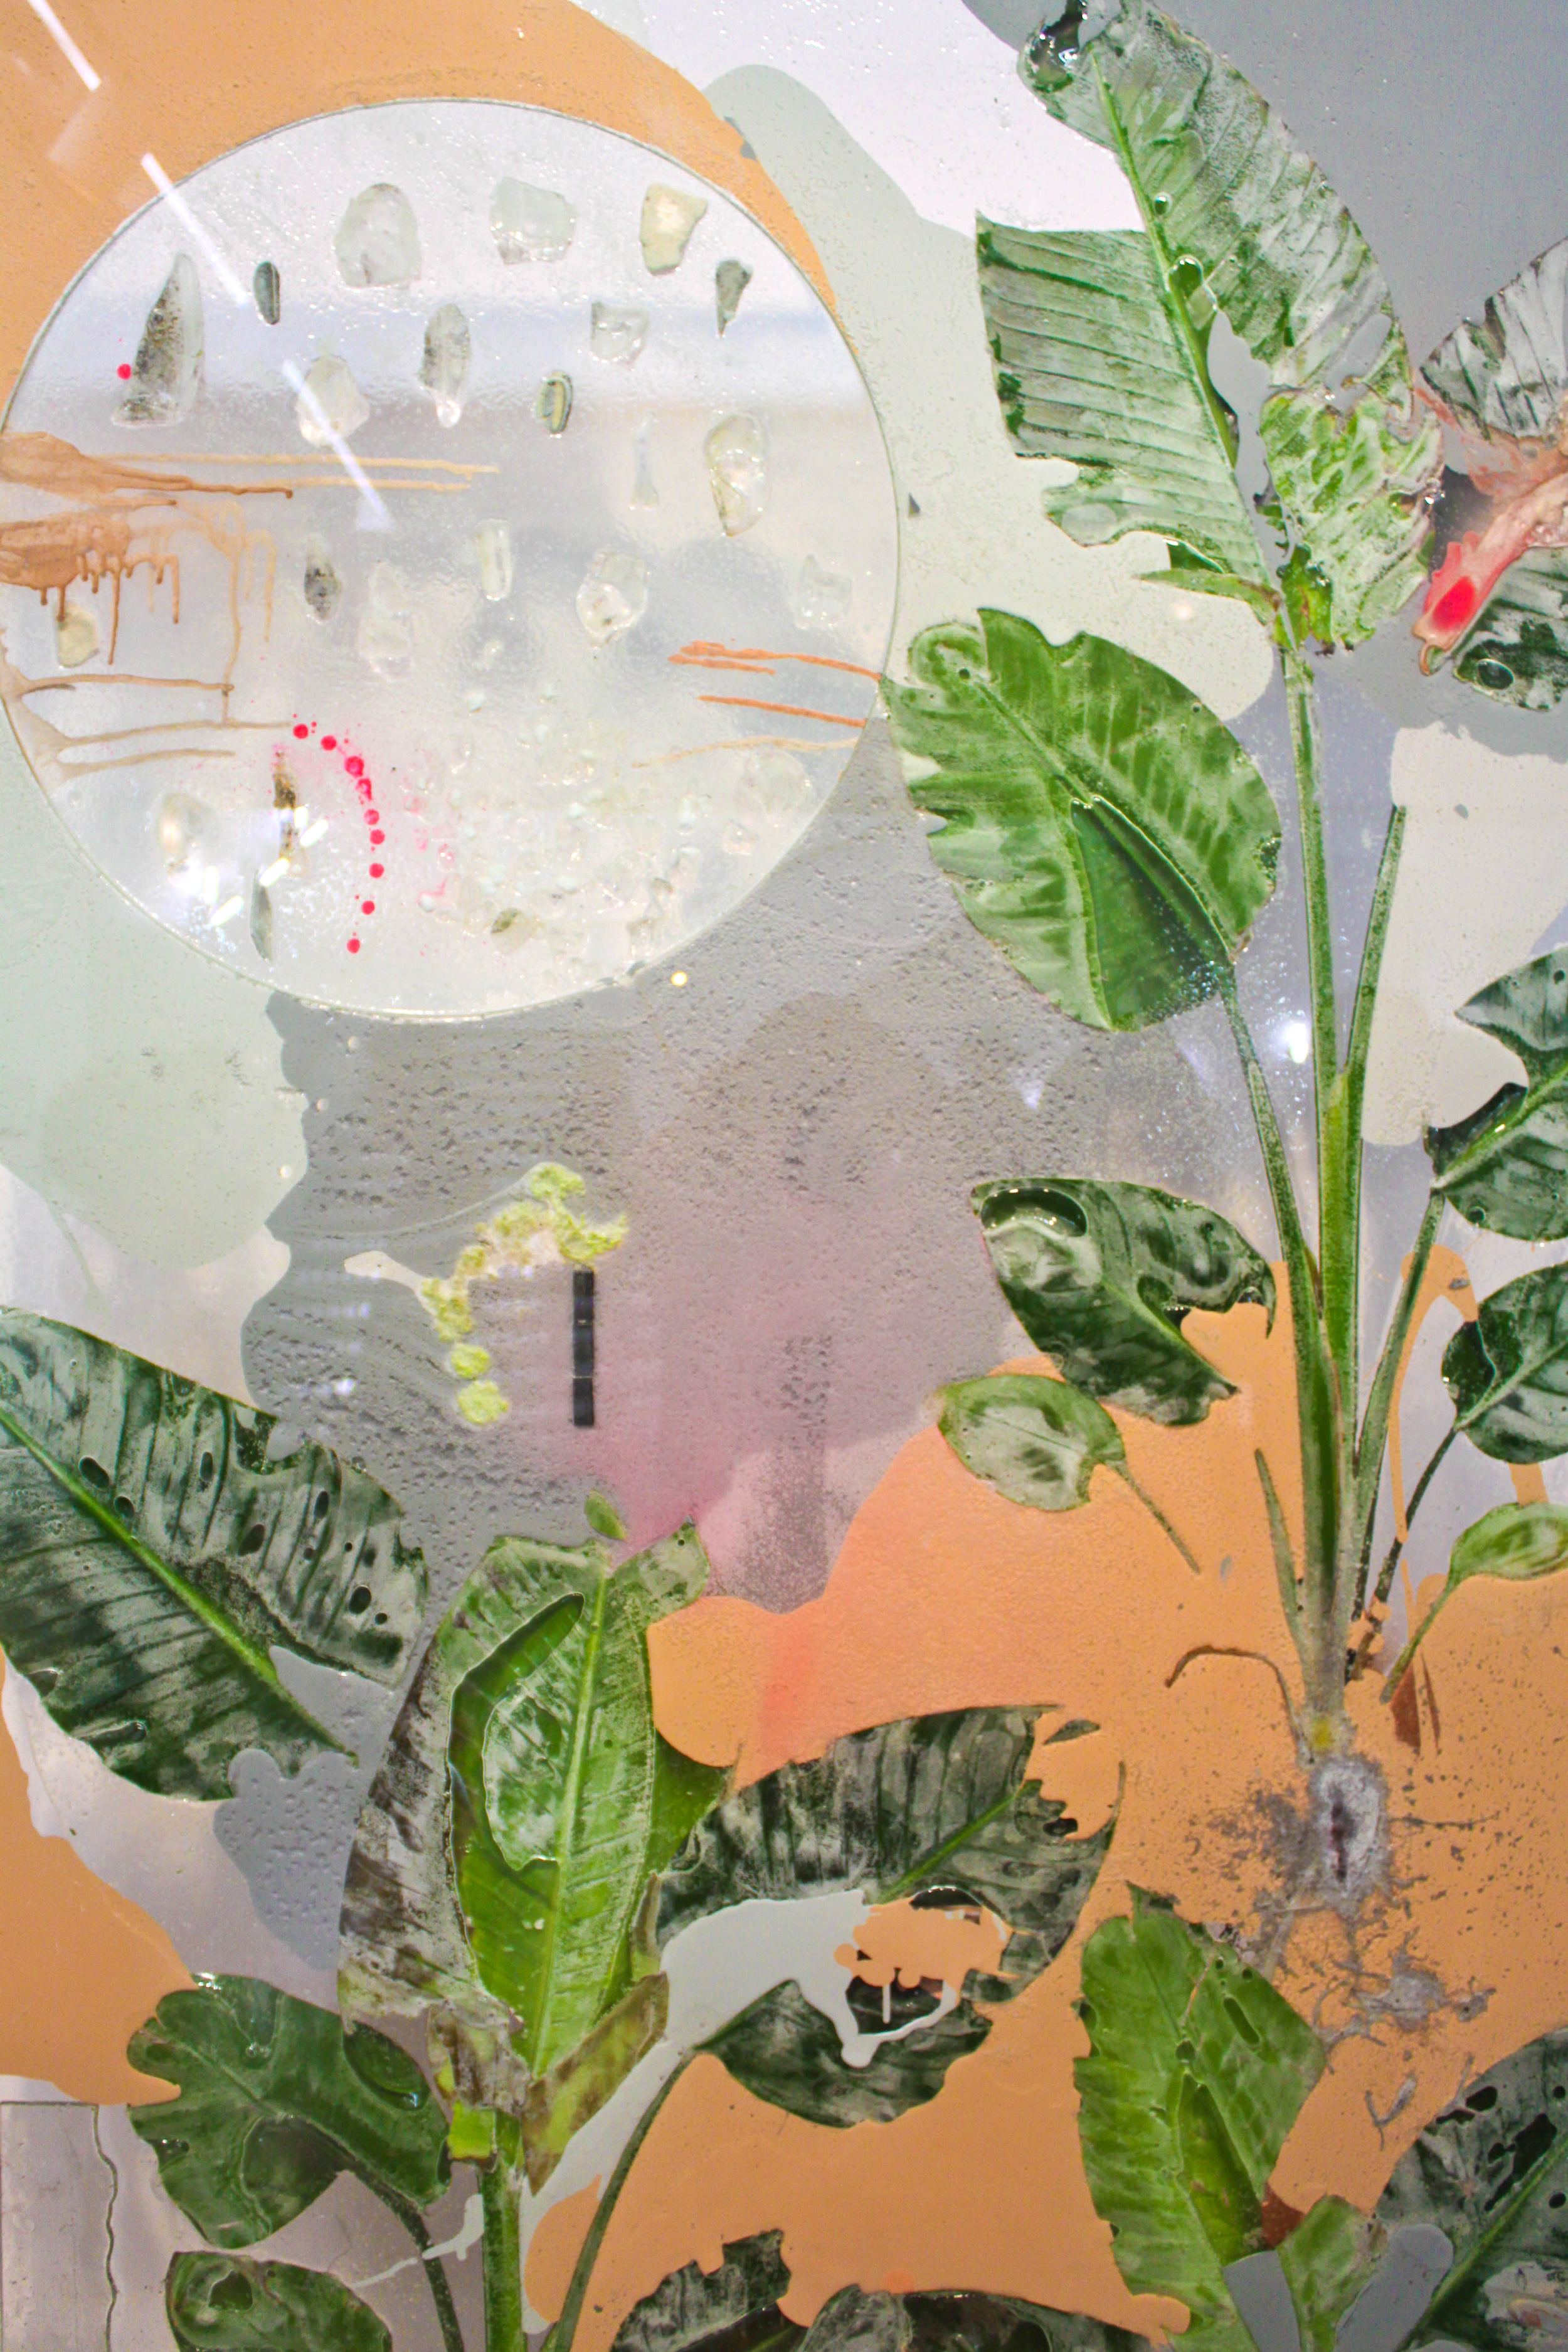 Pressed Plant (Anaphase), 2012, Philodendron selloum, latex paint, spray paint, glass, resin, mirror, 92 x 45 inches